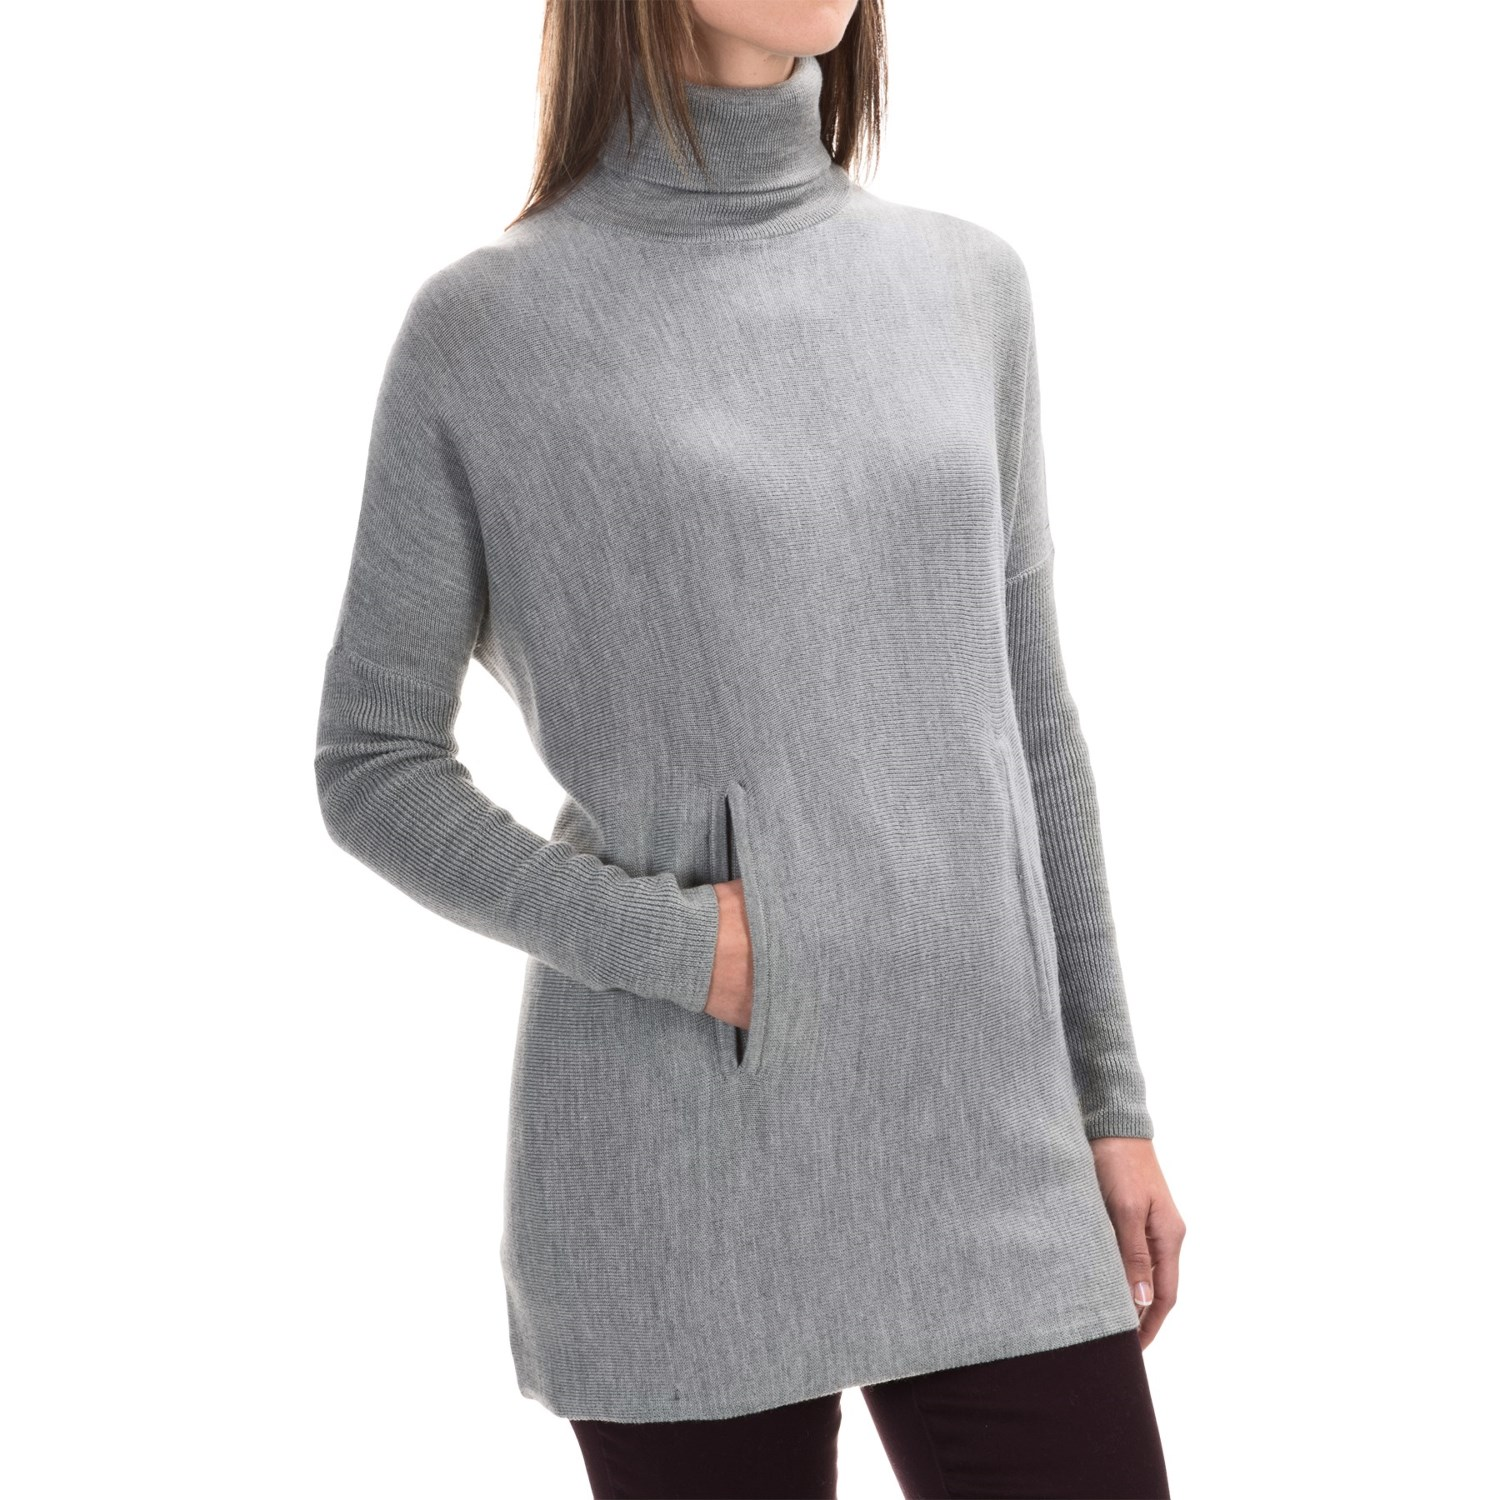 Soft yet durable—our casual and outdoor women's sweaters provide comfort with minimal impact. Free Shipping over $75 at bestyload7od.cf 1% for the Planet®. Warm crewneck sweater made of 95% recycled cashmere/5% wool made from pre-consumer cashmere waste that's mechanically broken down and spun into new yarn. The Off Country Turtleneck.